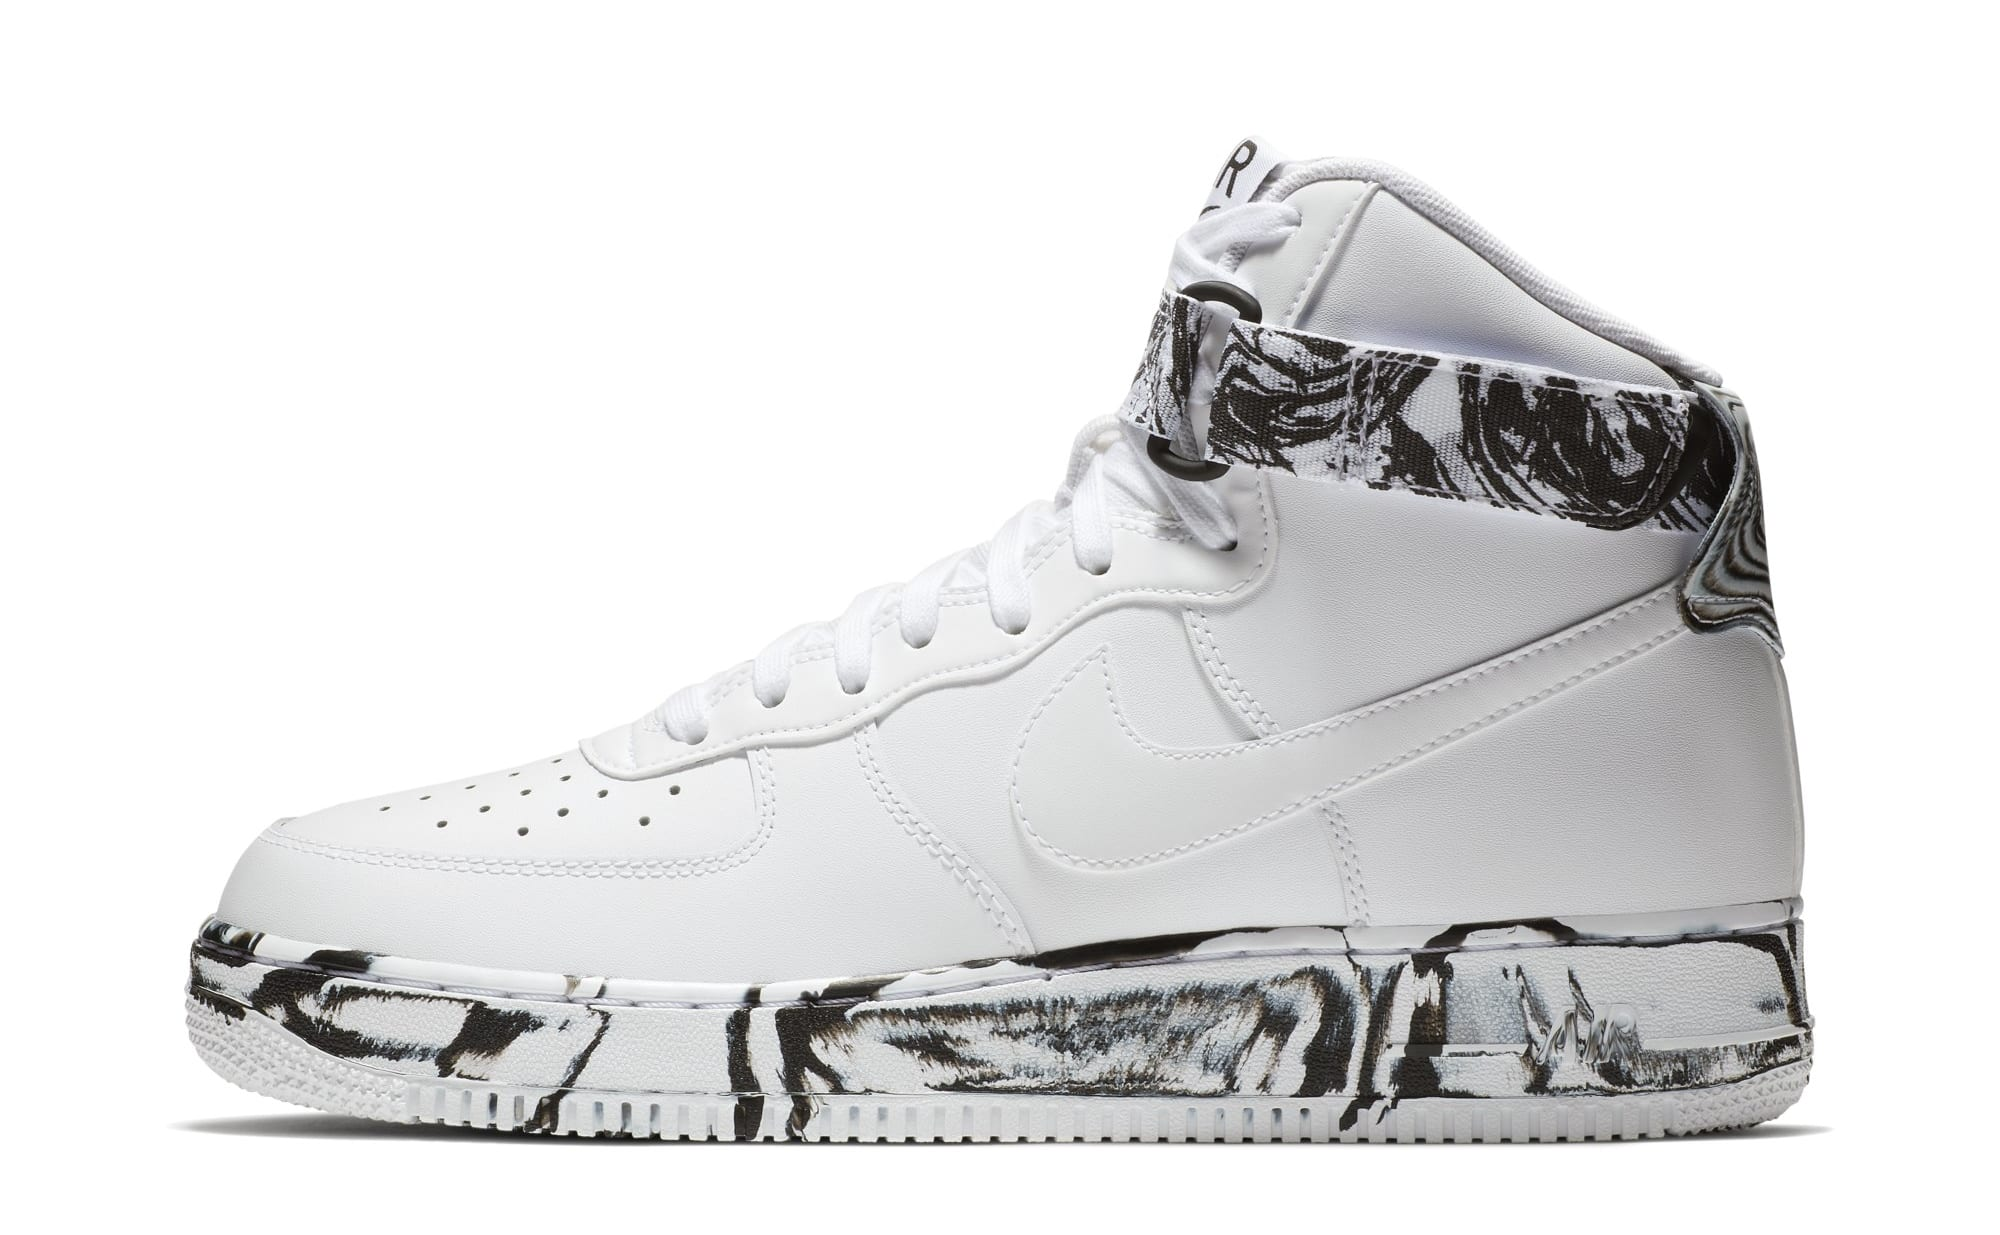 Nike Air Force 1 High 'White/Black/White' AT3293-100 (Lateral)